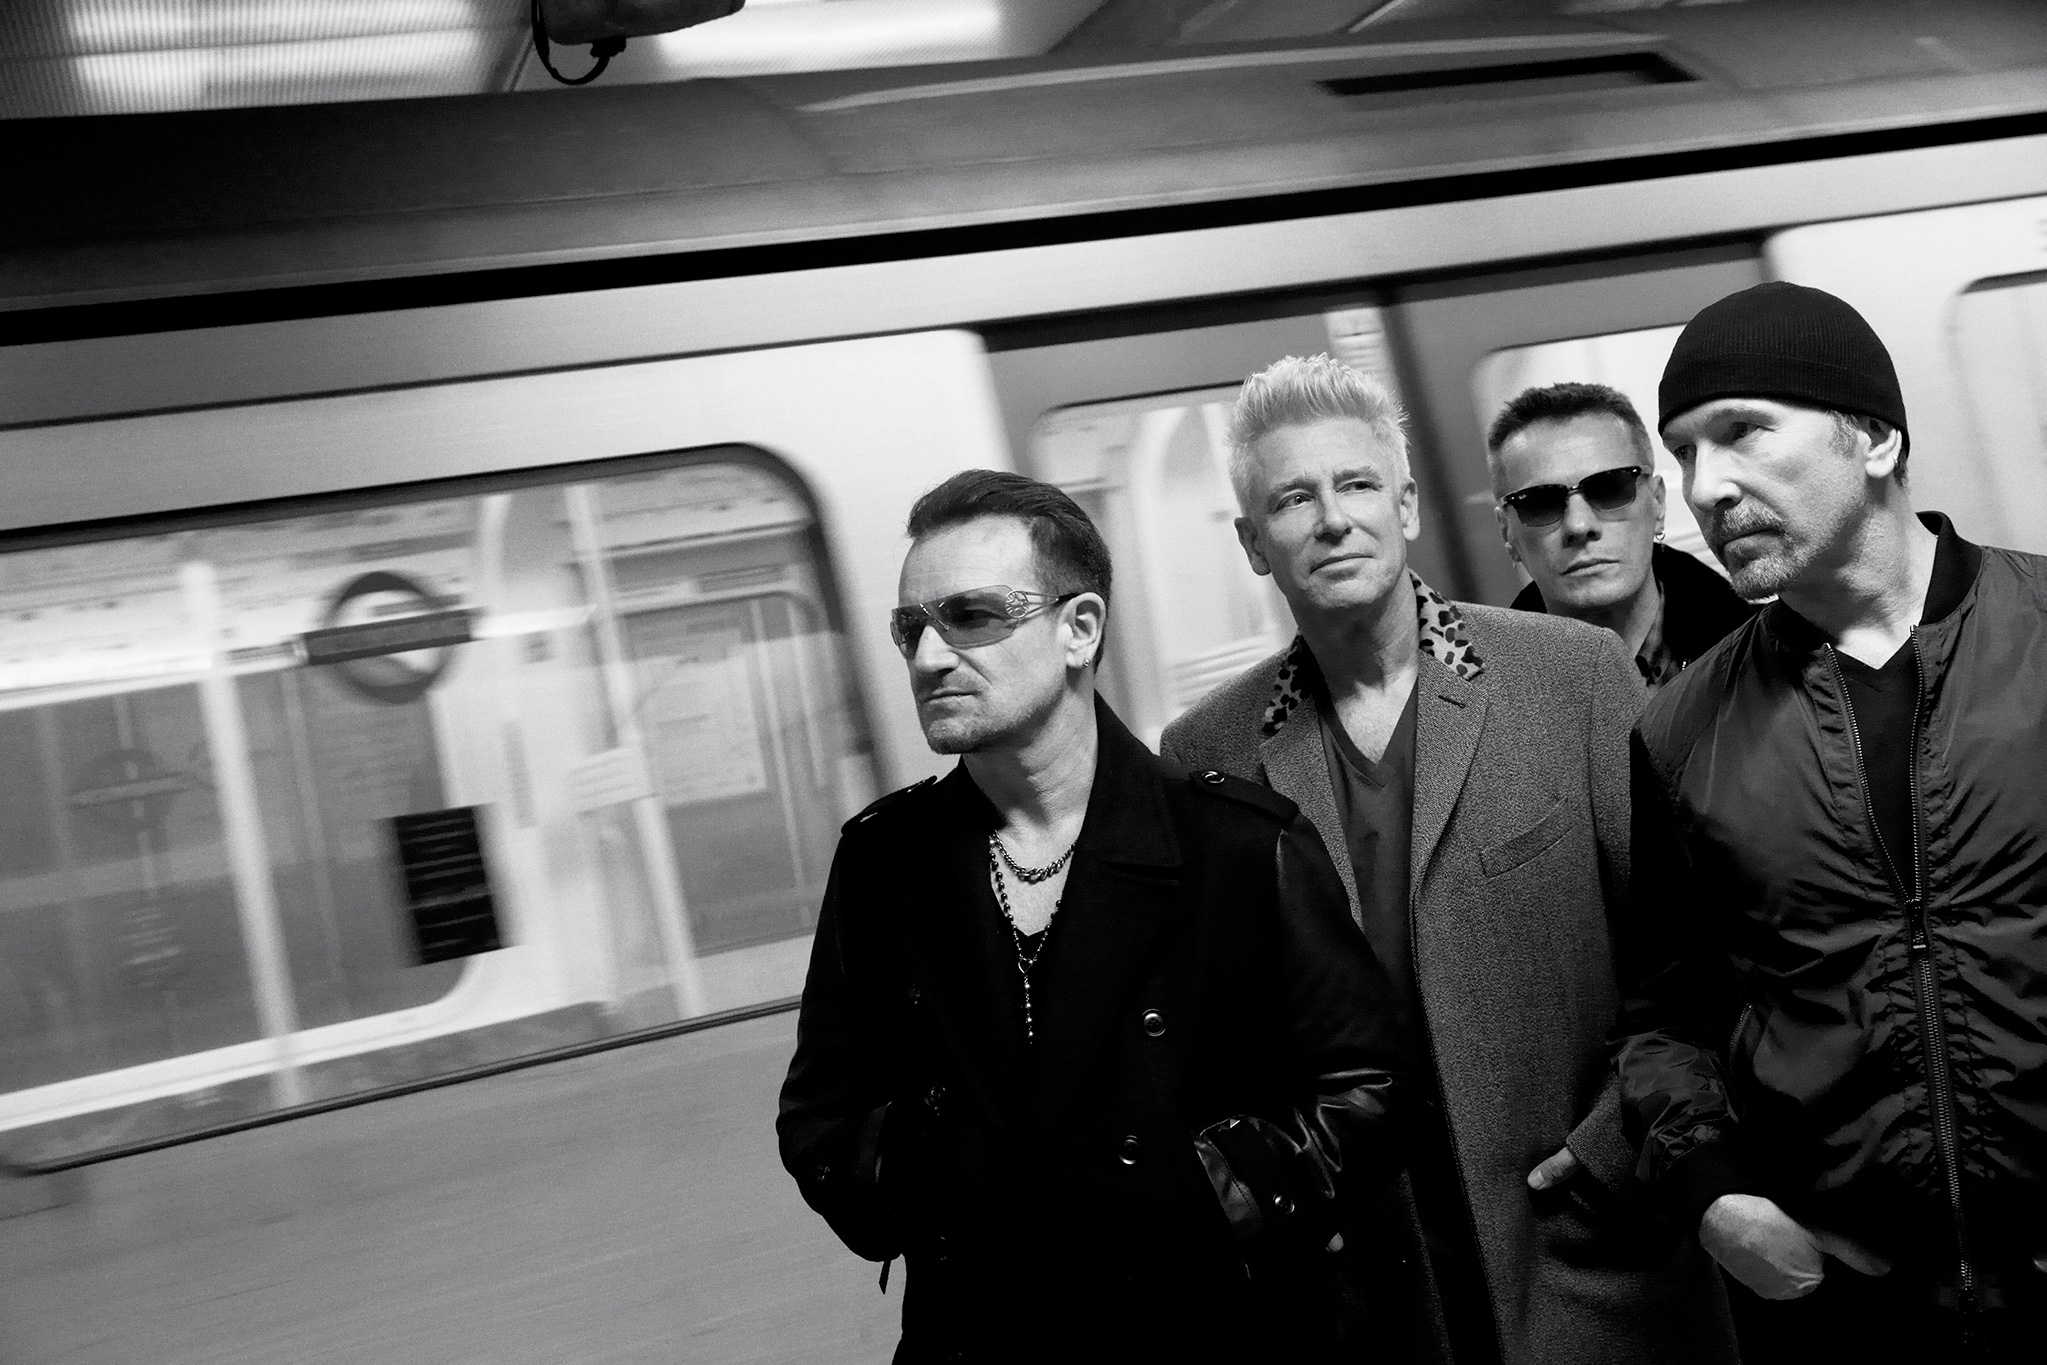 U2 release new album 'Songs of Innocence', Apple give it away free today